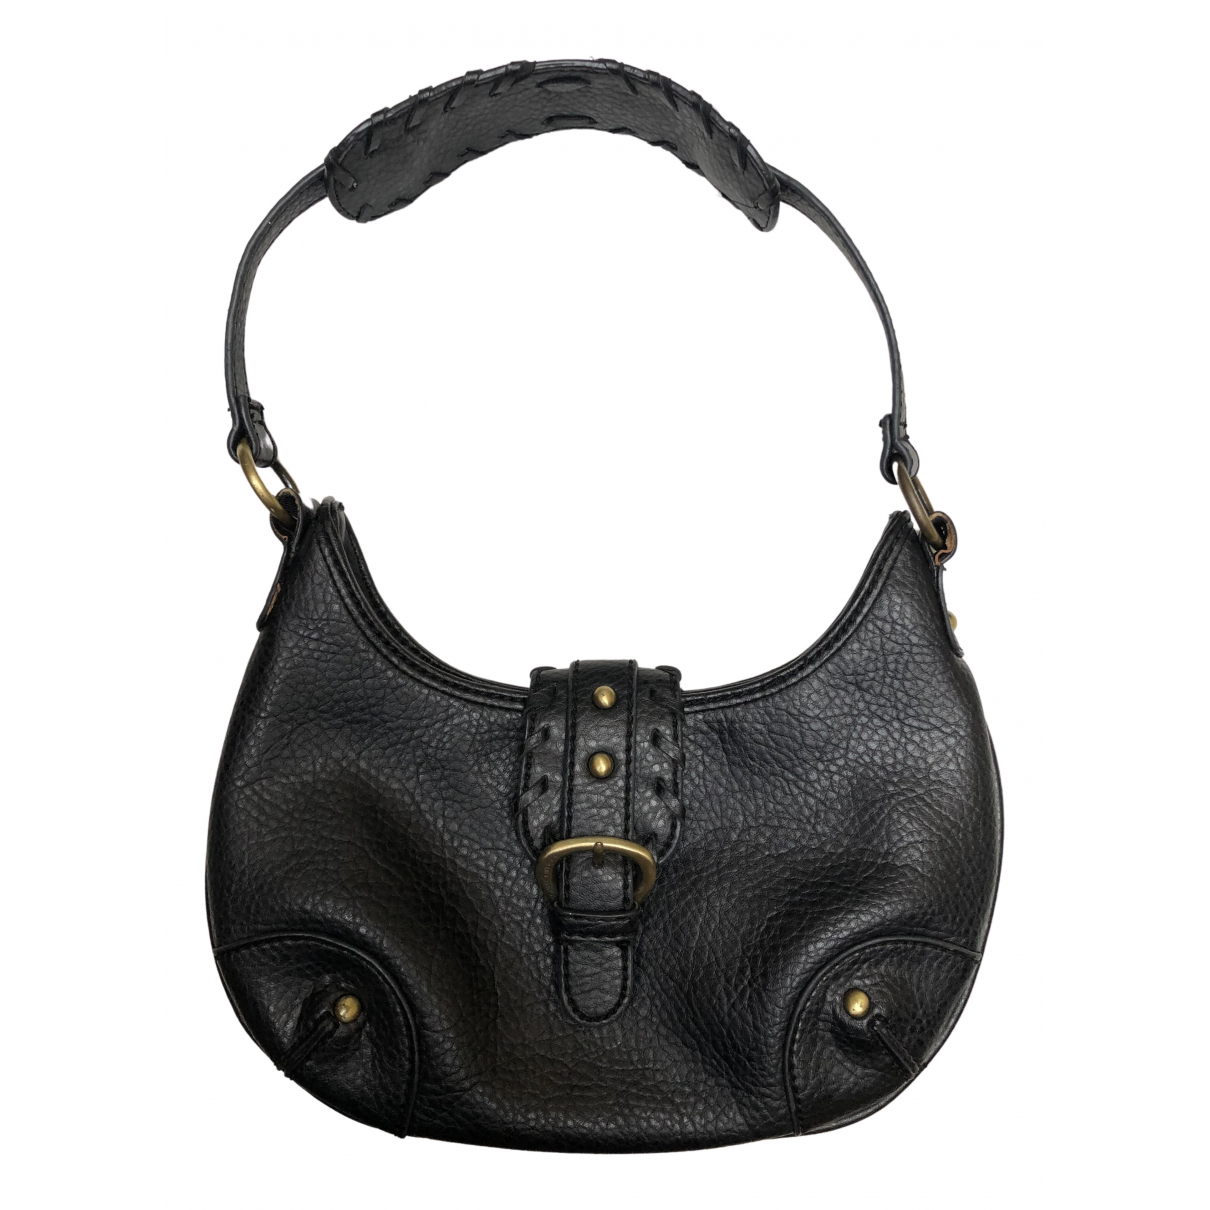 Tommy Hilfiger N Black handbag for Women N